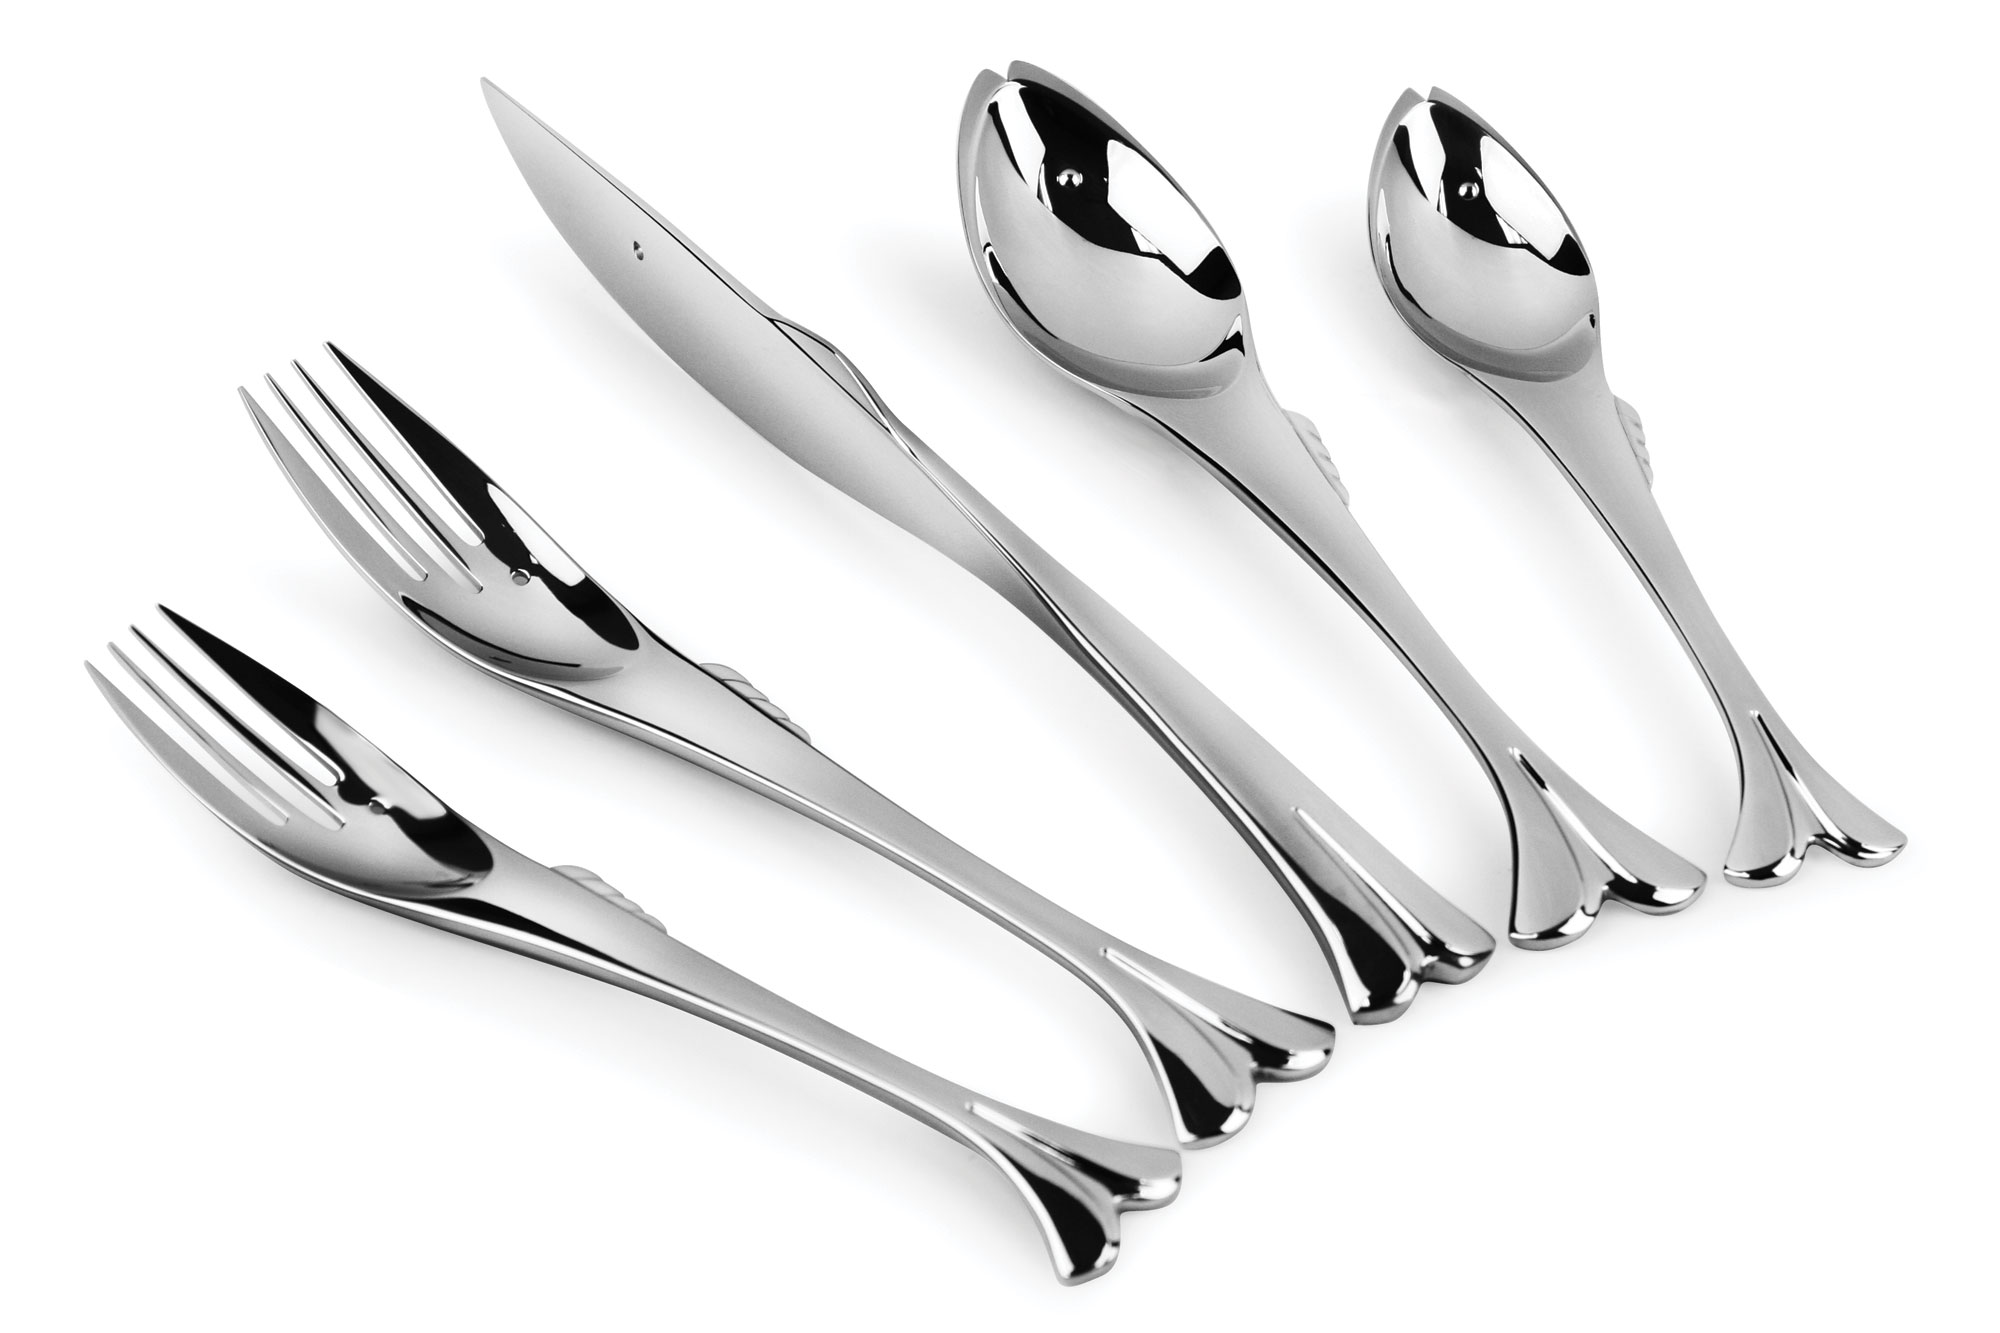 Chef Knife Sets